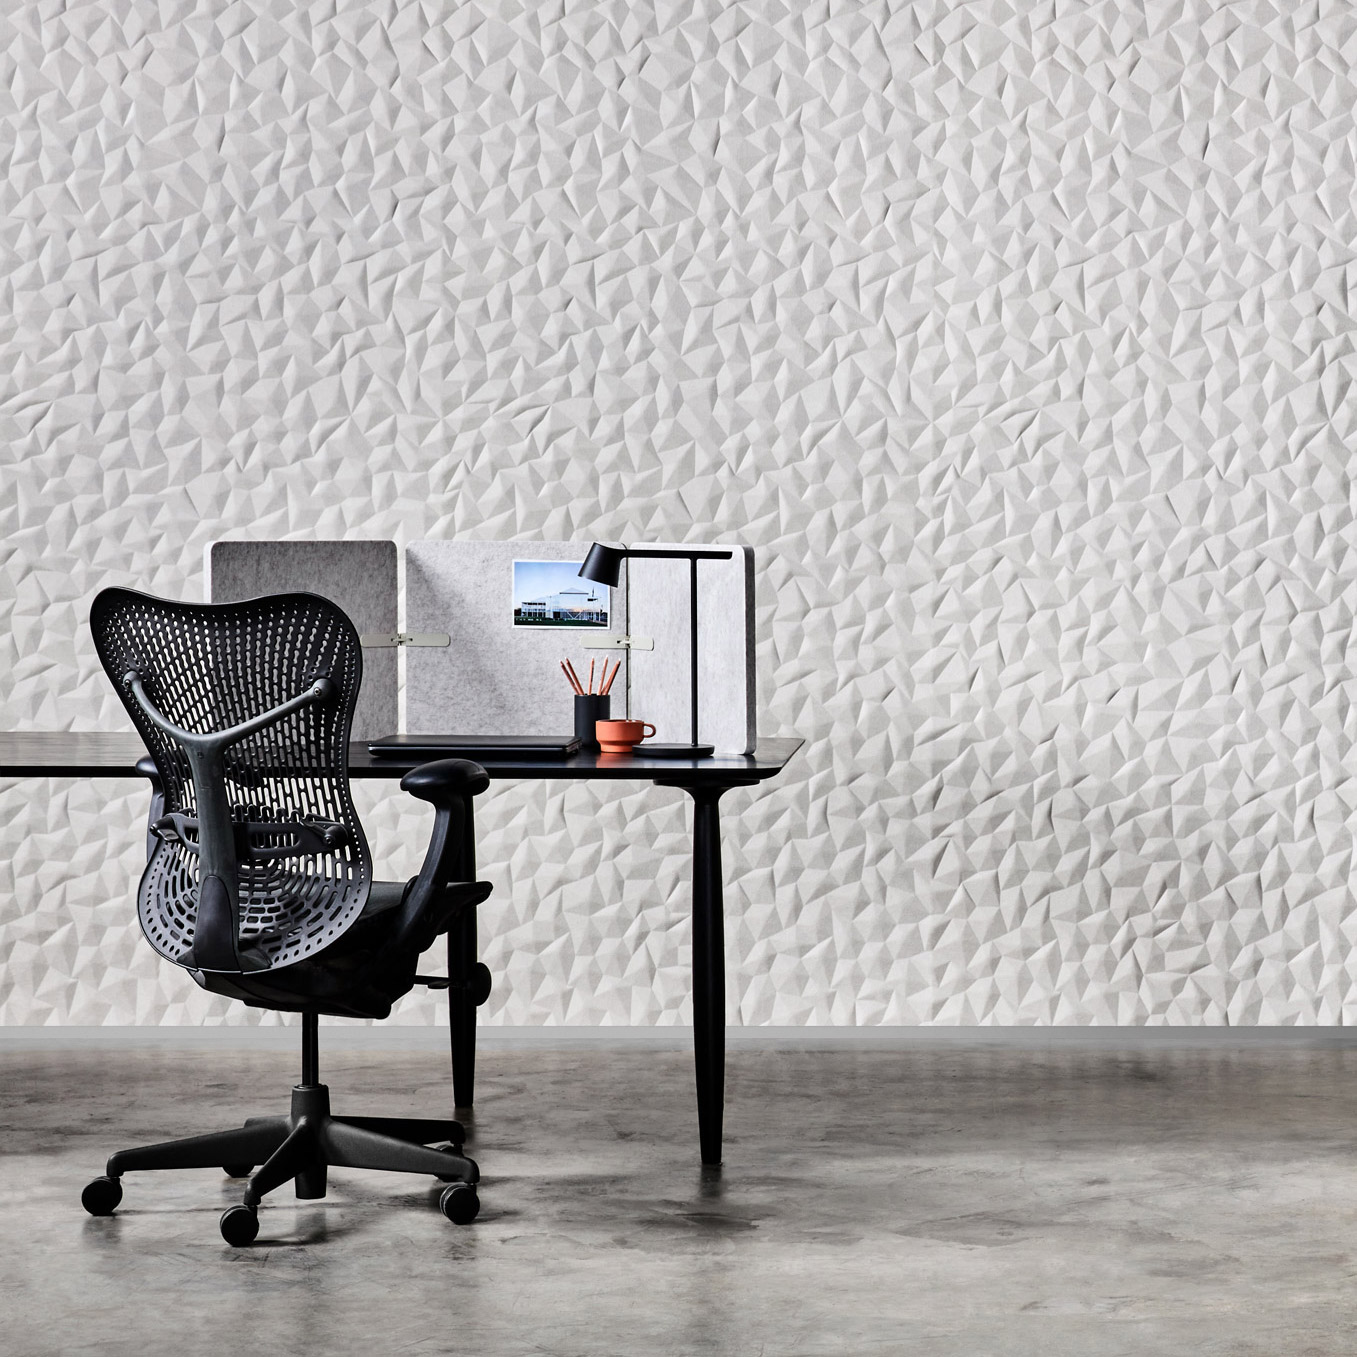 Zen and Ion acoustic wall panels by Woven Image